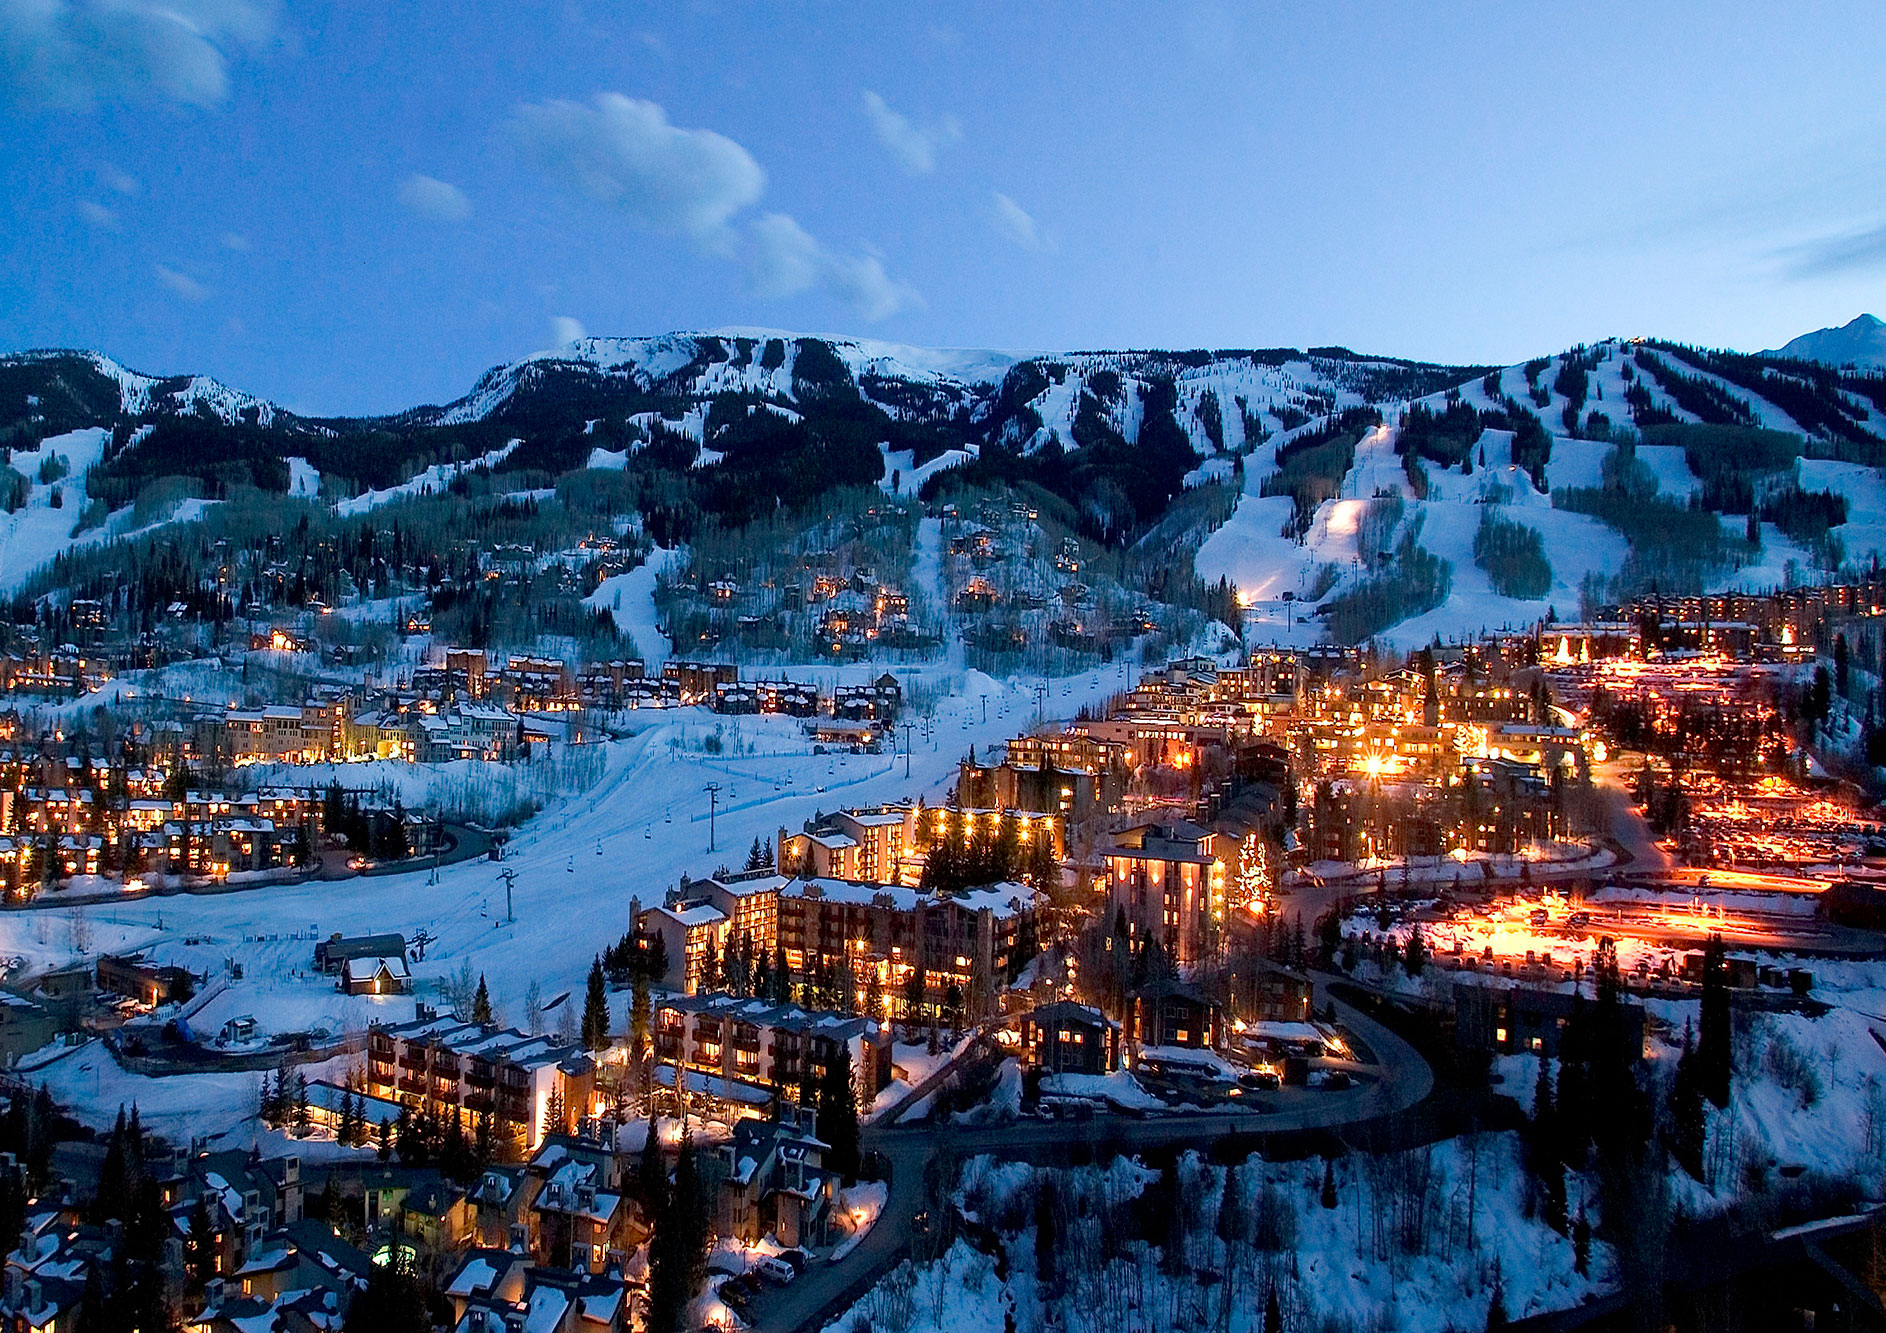 Snowmass Village at Night